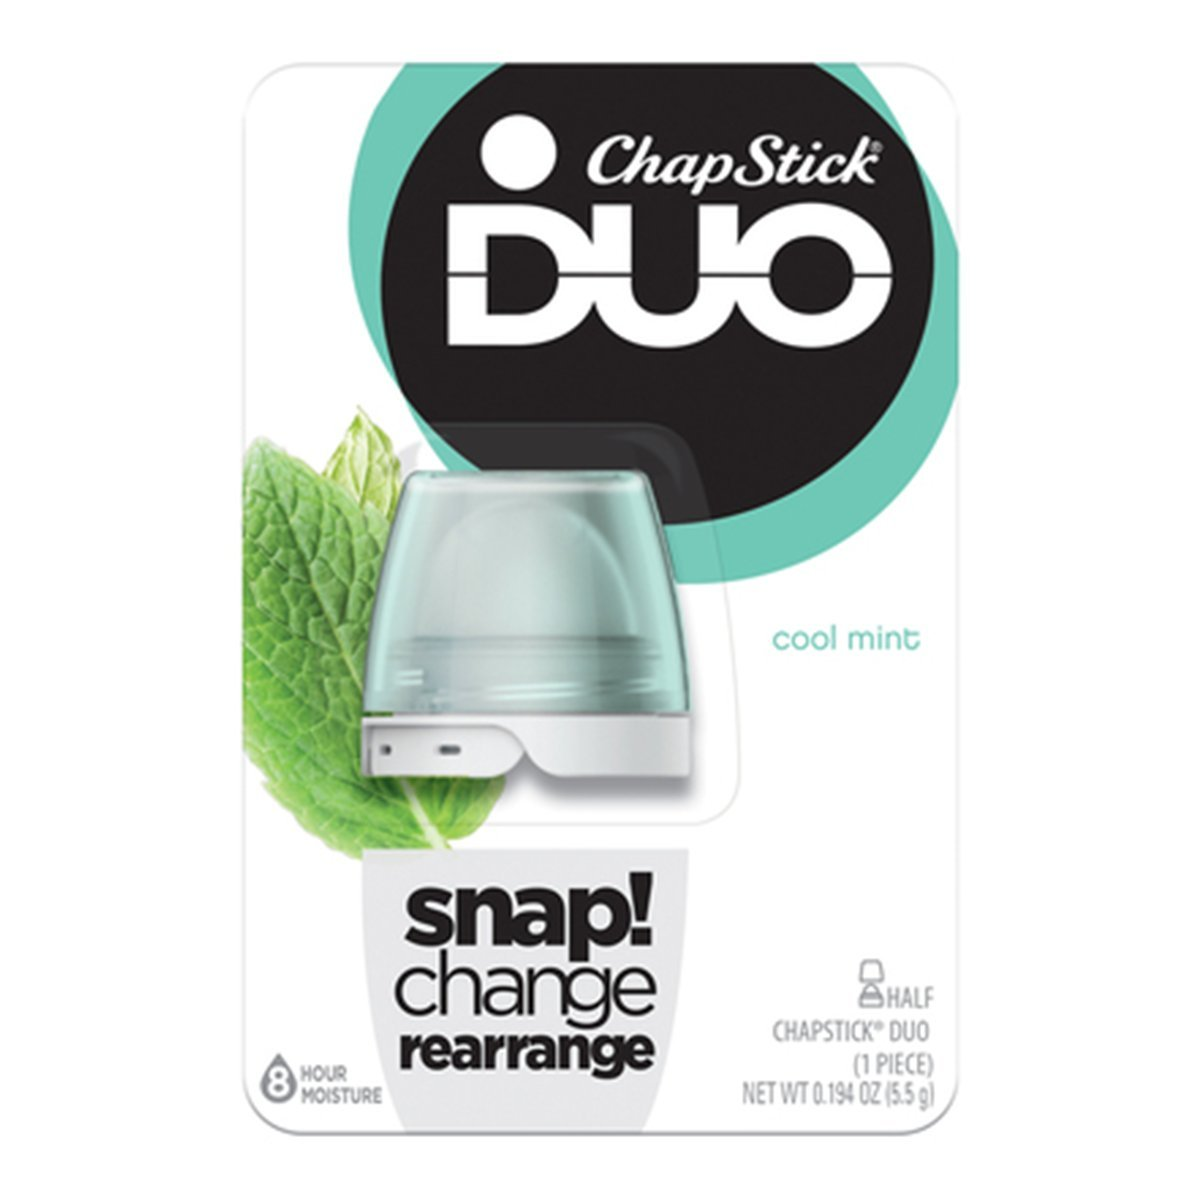 ChapStick DUO Half Lip Balm, 8 Hour Moisture, 0.194 Ounce (Cool Mint Flavor, 1 Blister Pack of 1 Piece)